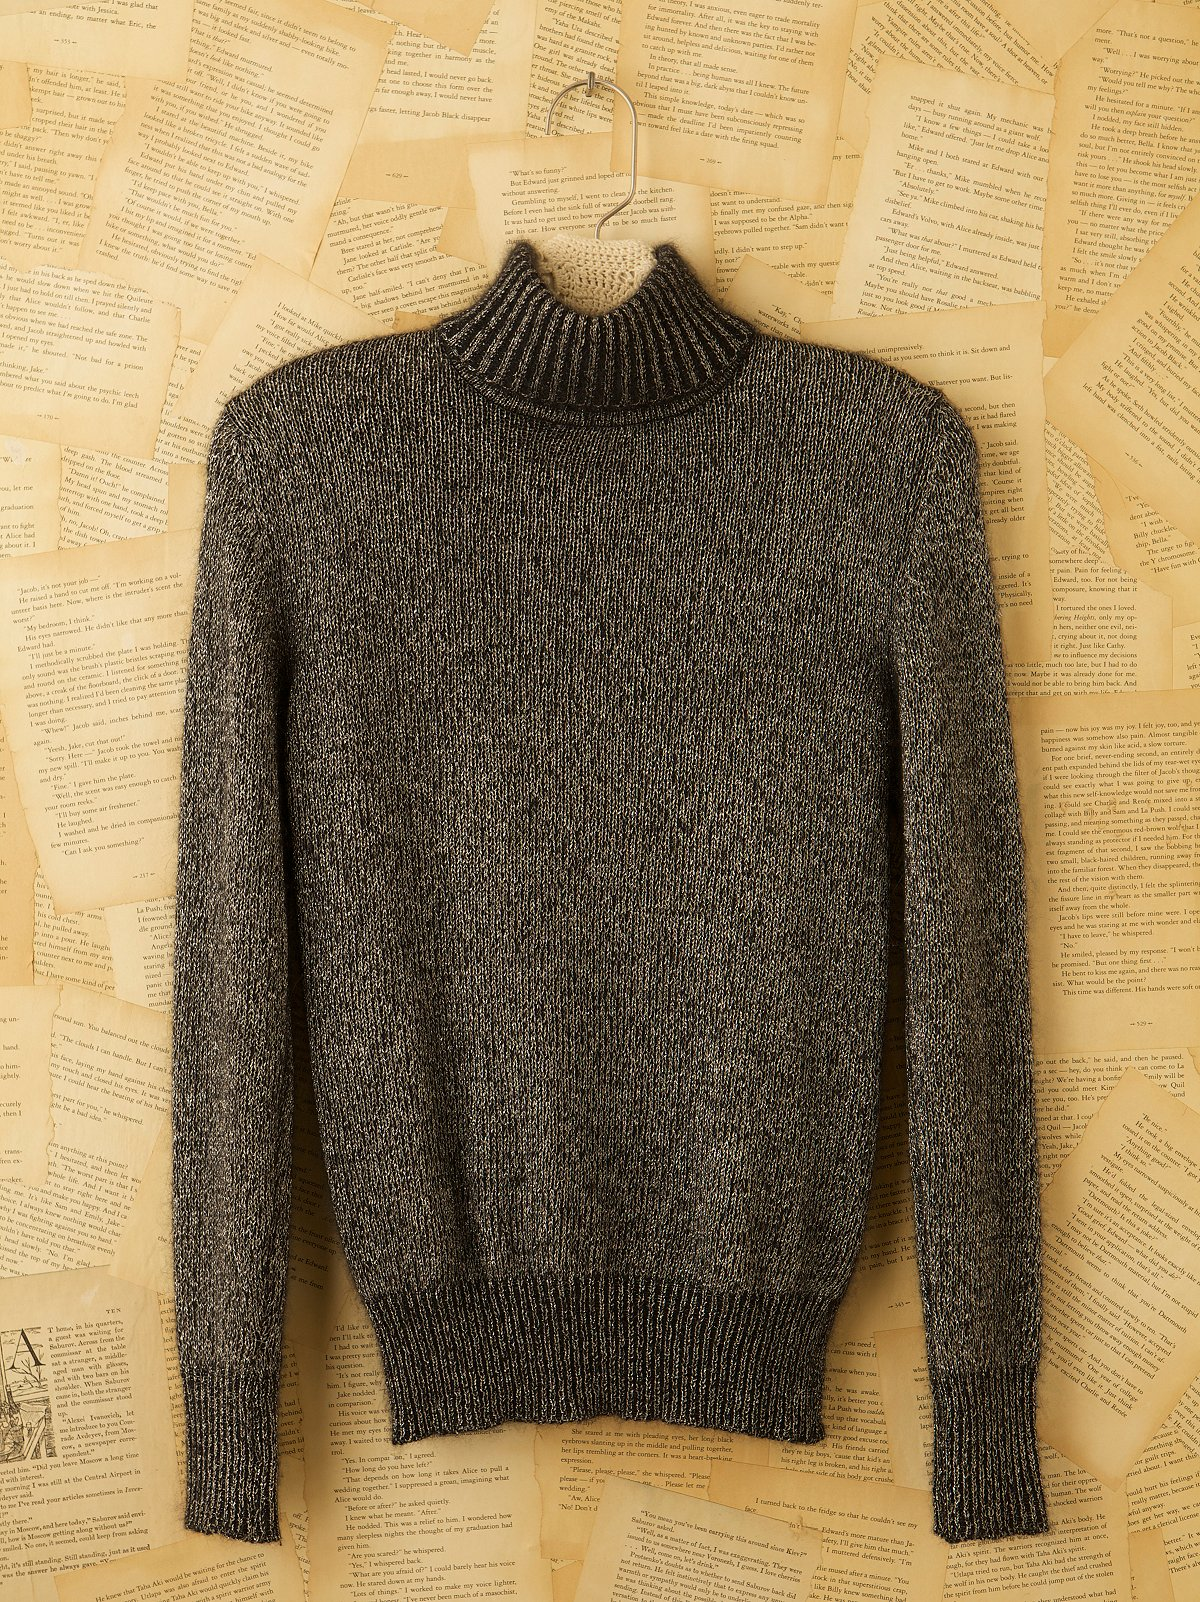 Vintage Lurex Sweater